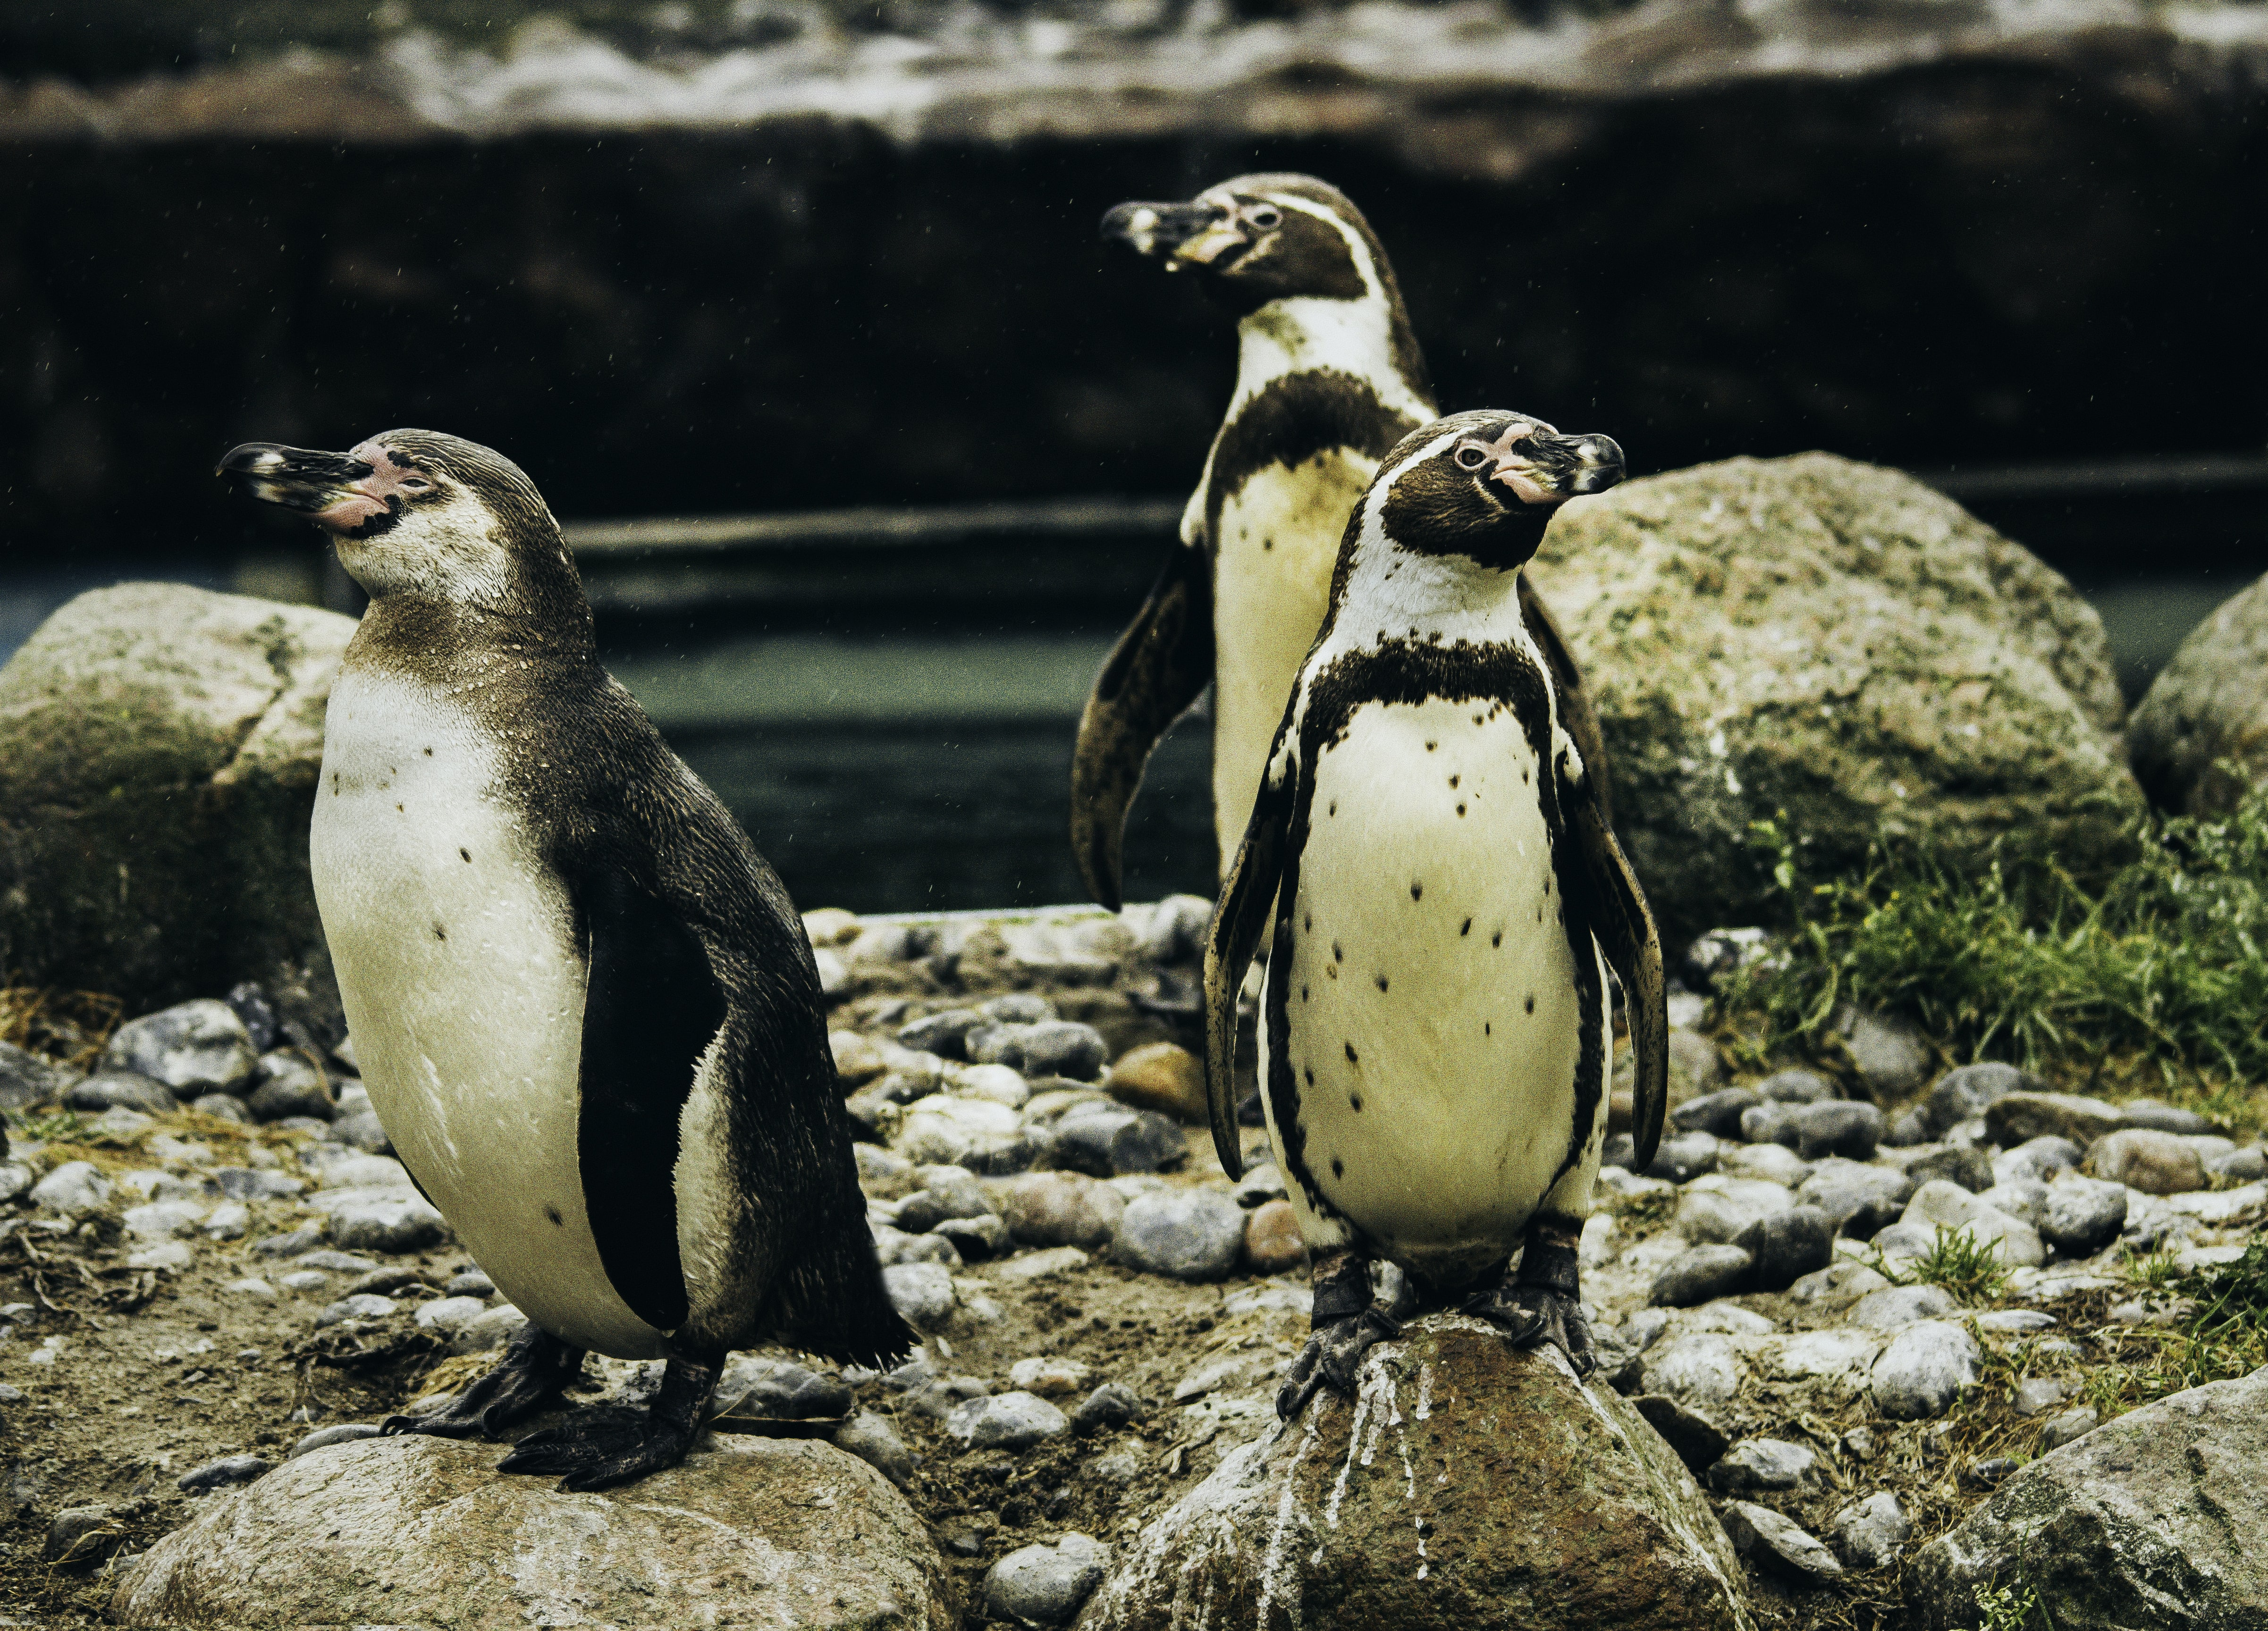 Three penguins balancing on rocks and pebbles by water